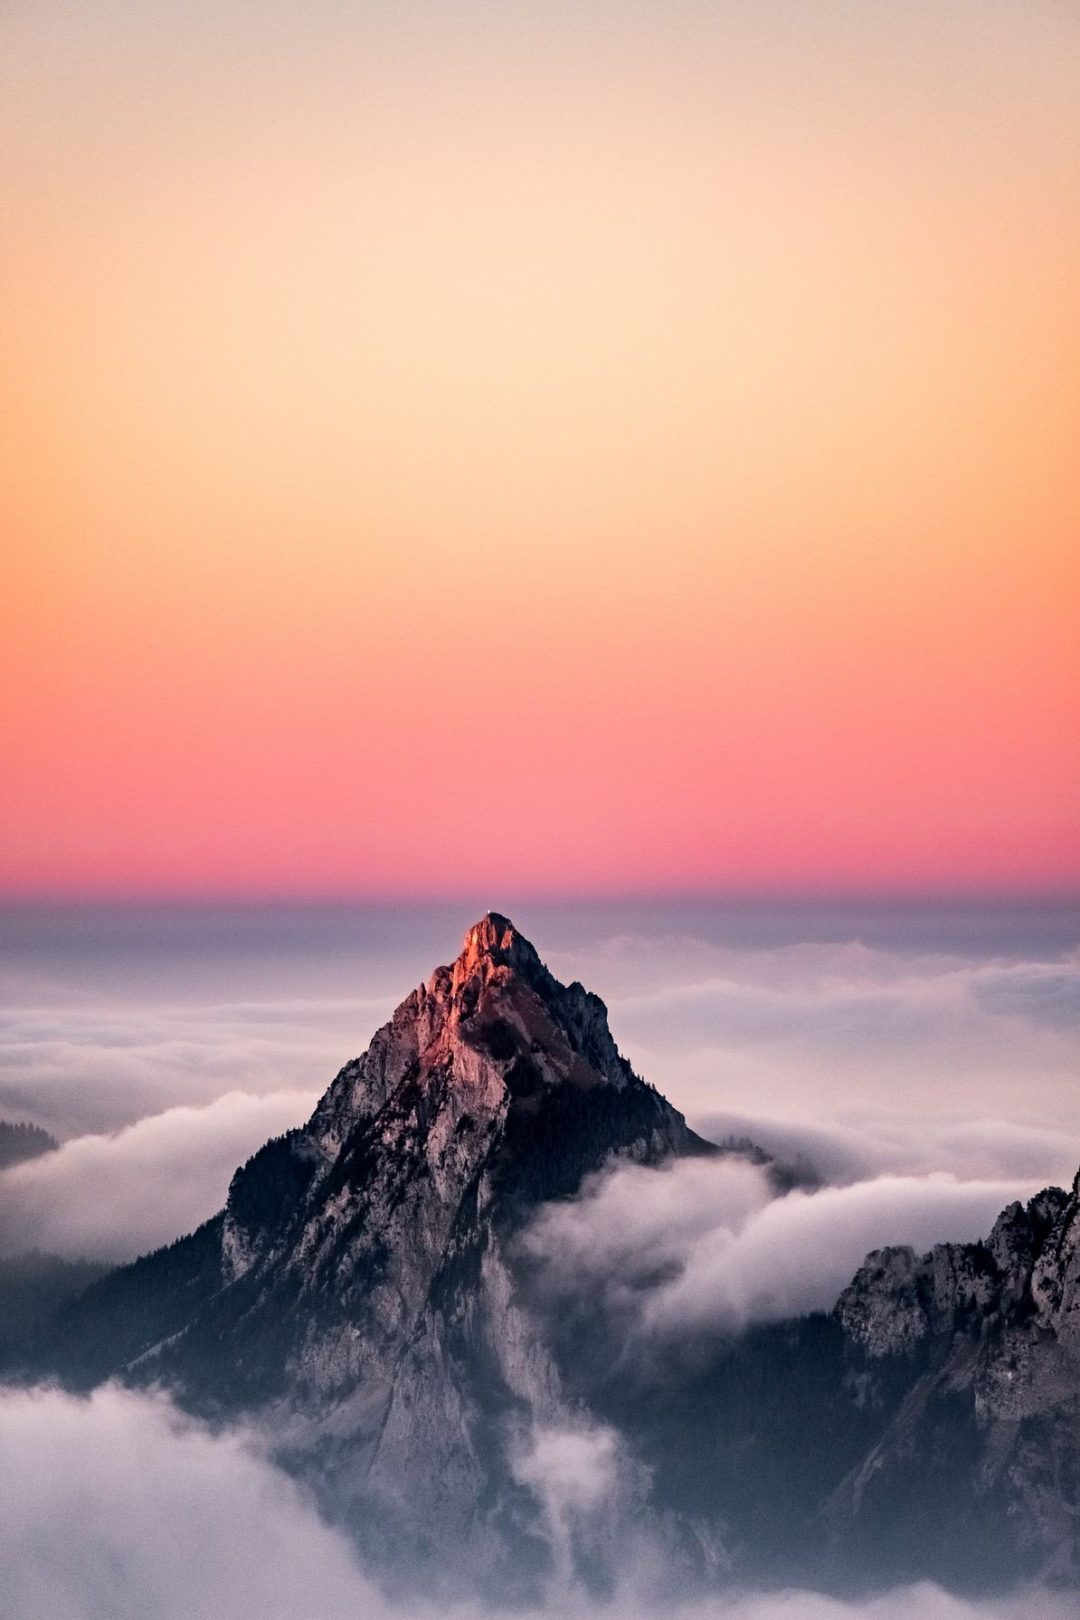 Mountain backgrounds for iPhone with pink sunset